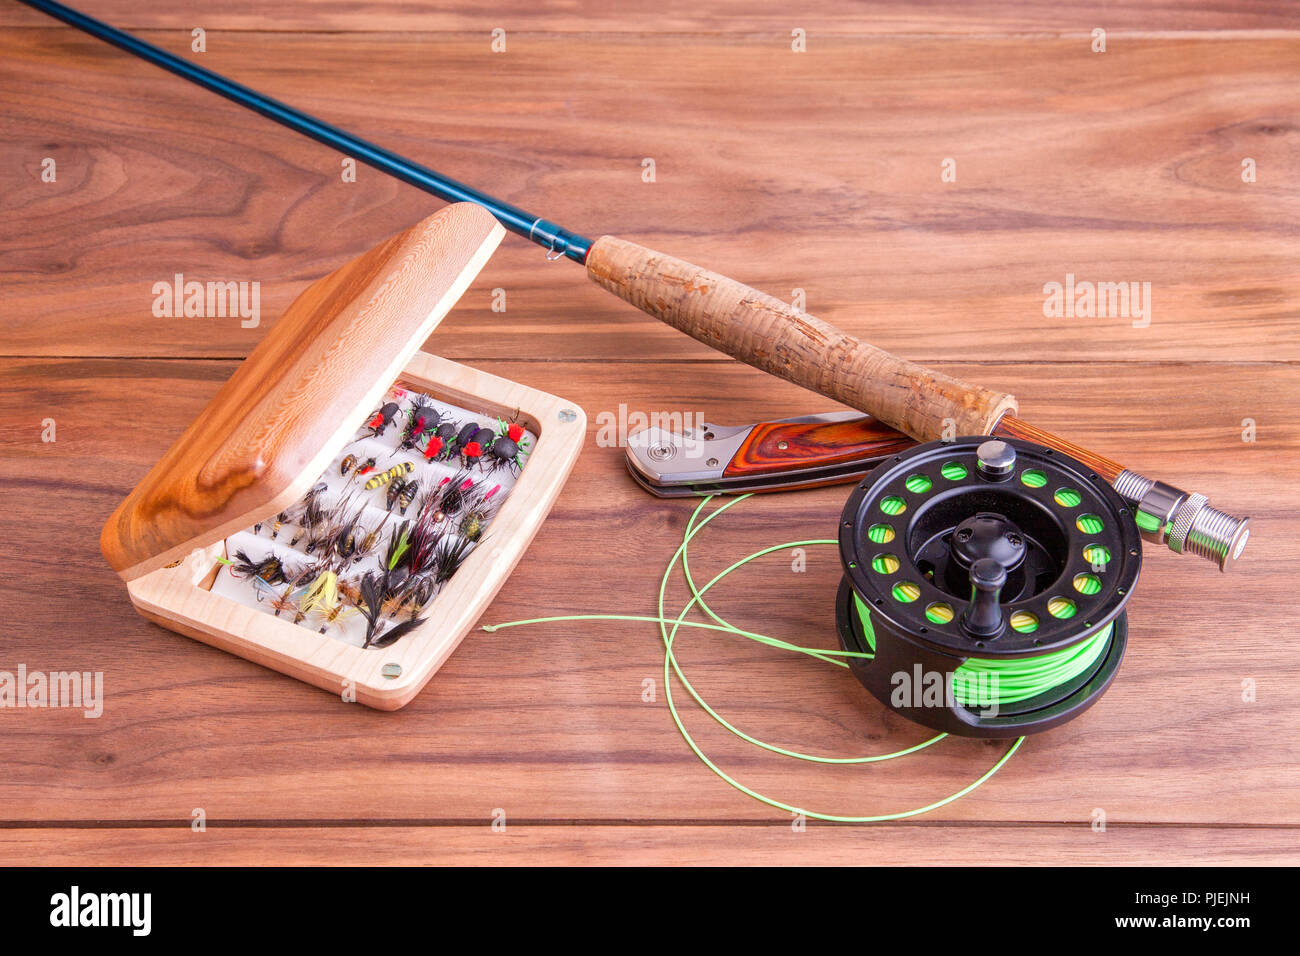 217e127ac054a Old Fishing Flies Stock Photos   Old Fishing Flies Stock Images - Alamy